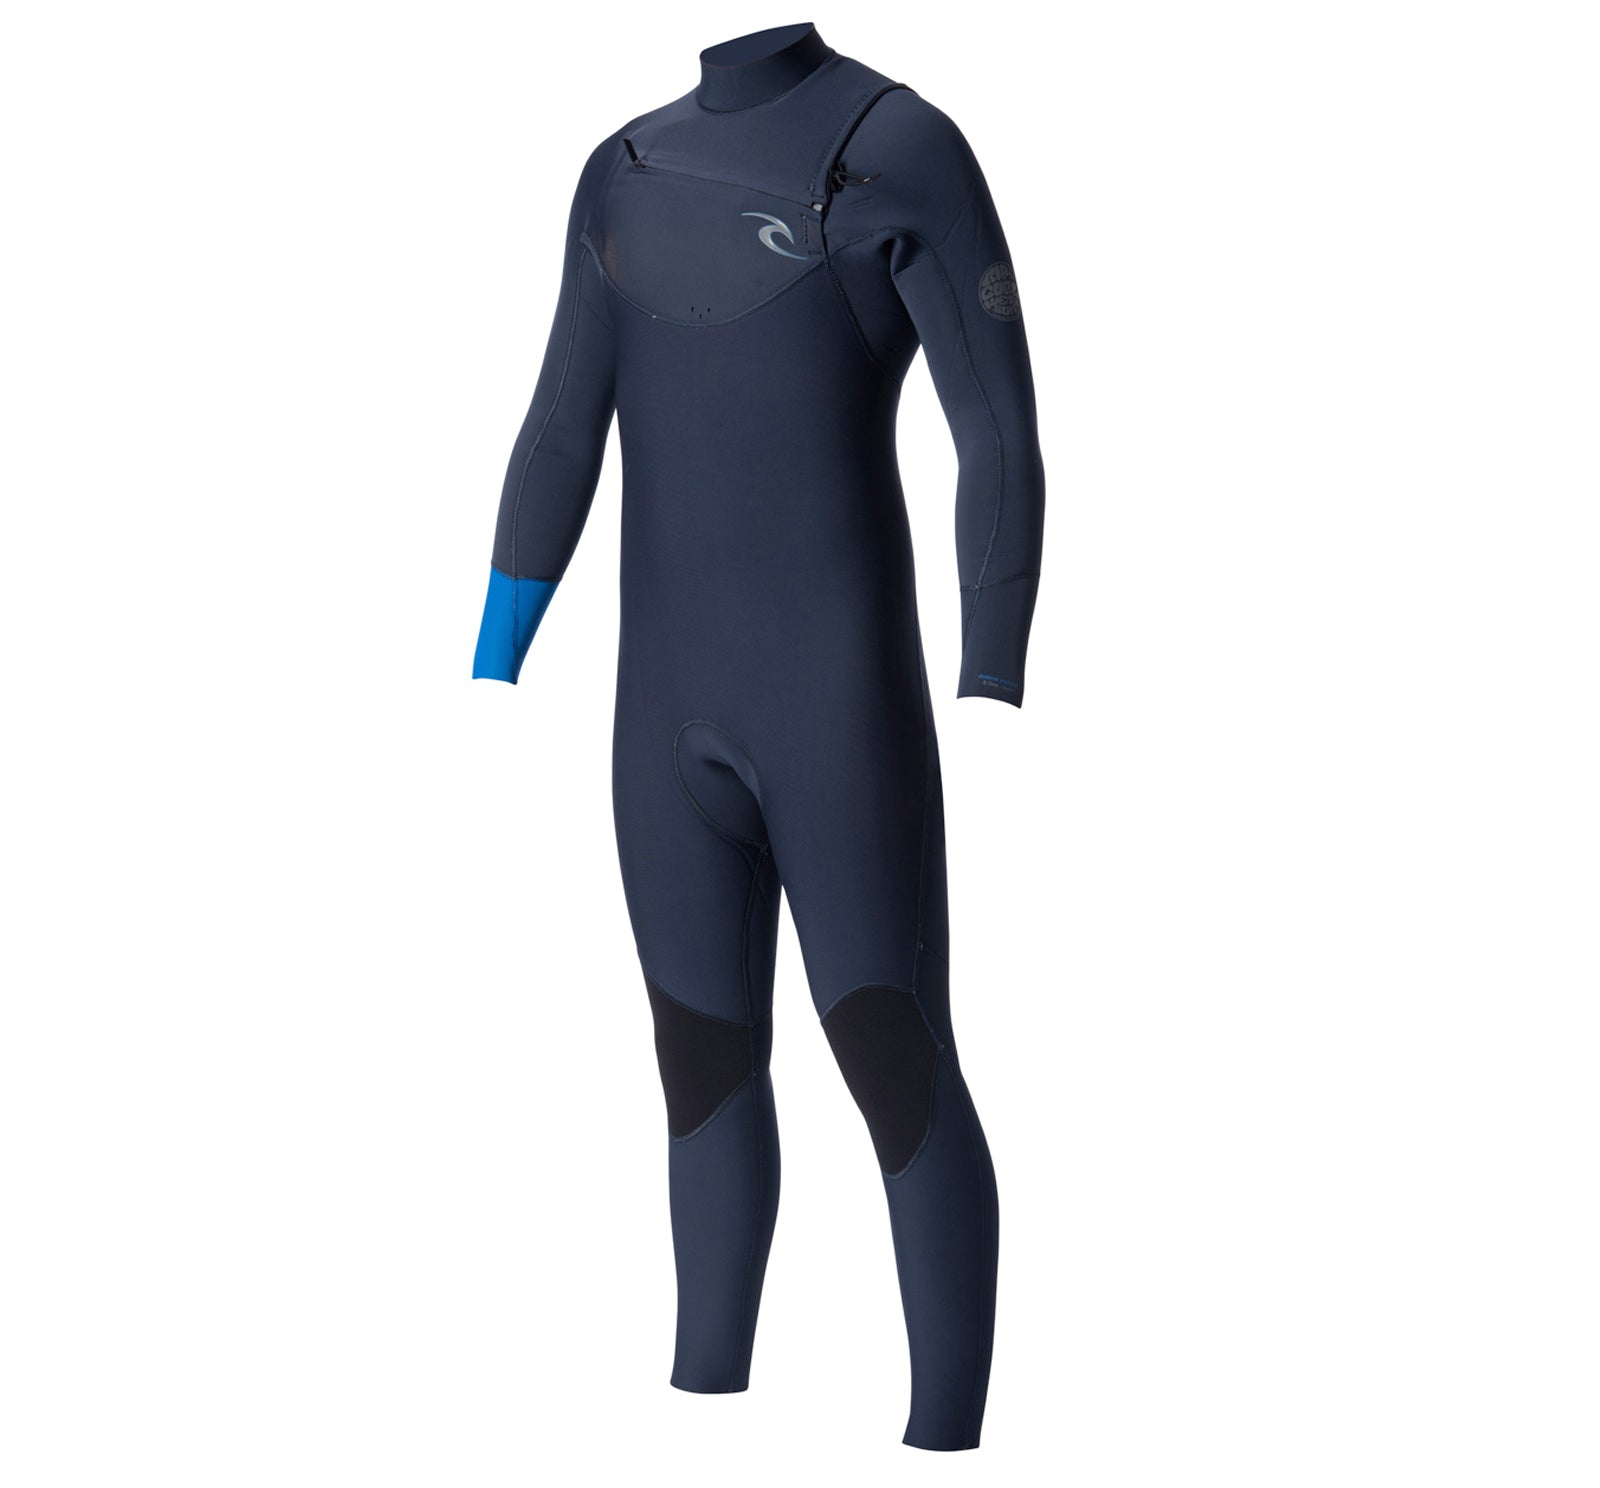 Rip Curl Dawn Patrol 3/2 Chest-Zip Men's L/S Fullsuit Wetsuit